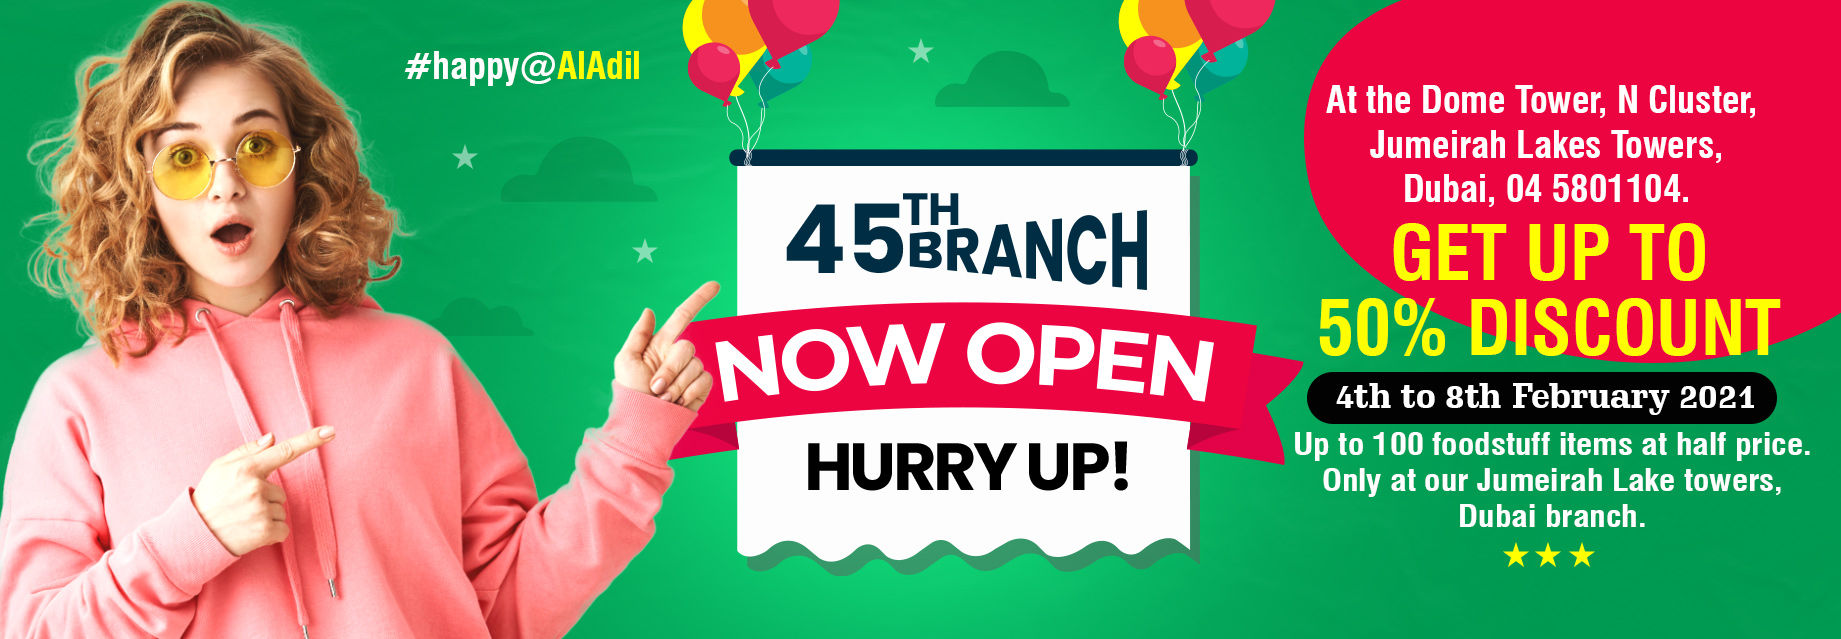 45Th branch Now open